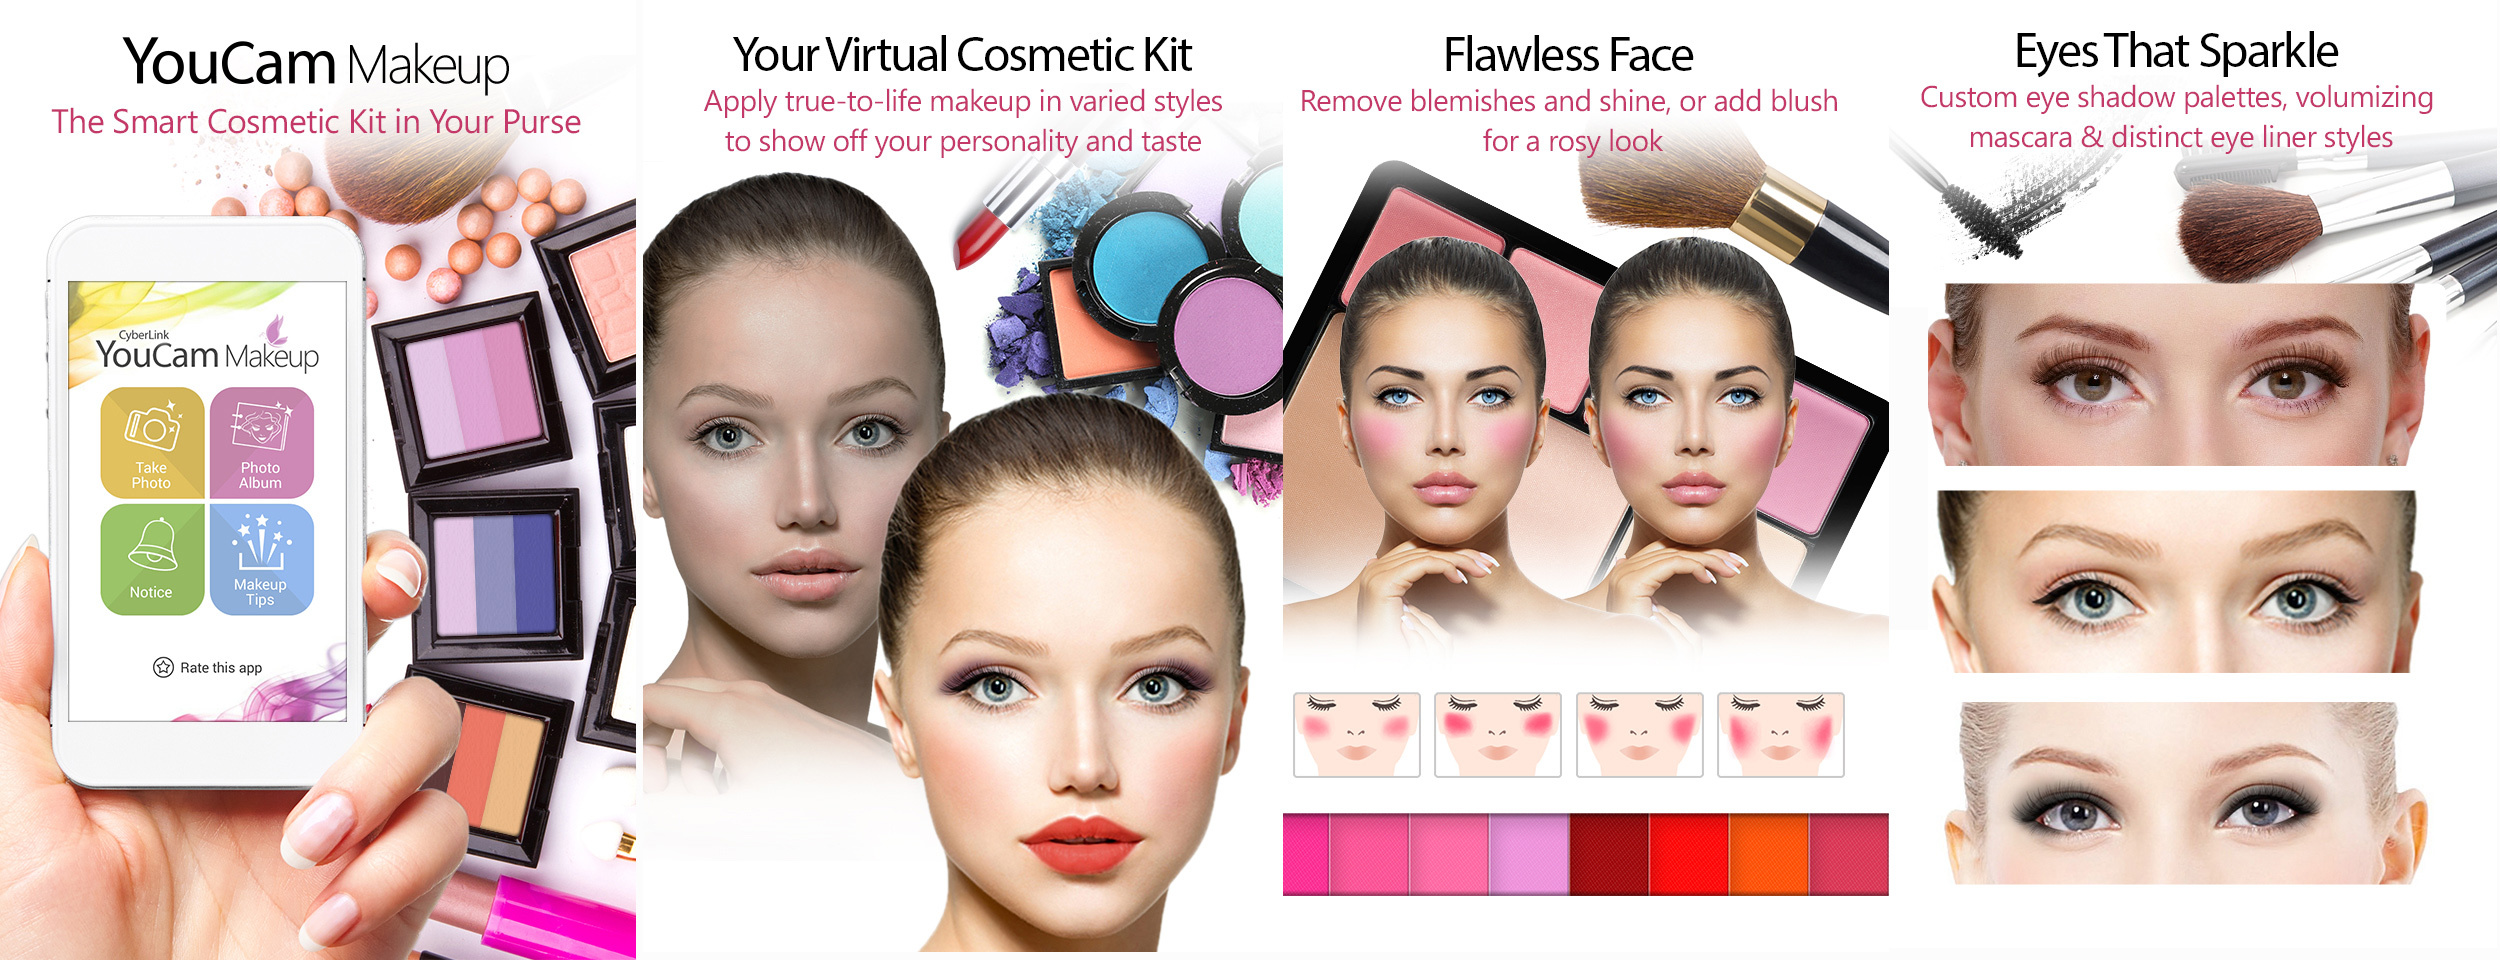 Features of the YouCam Makeup App